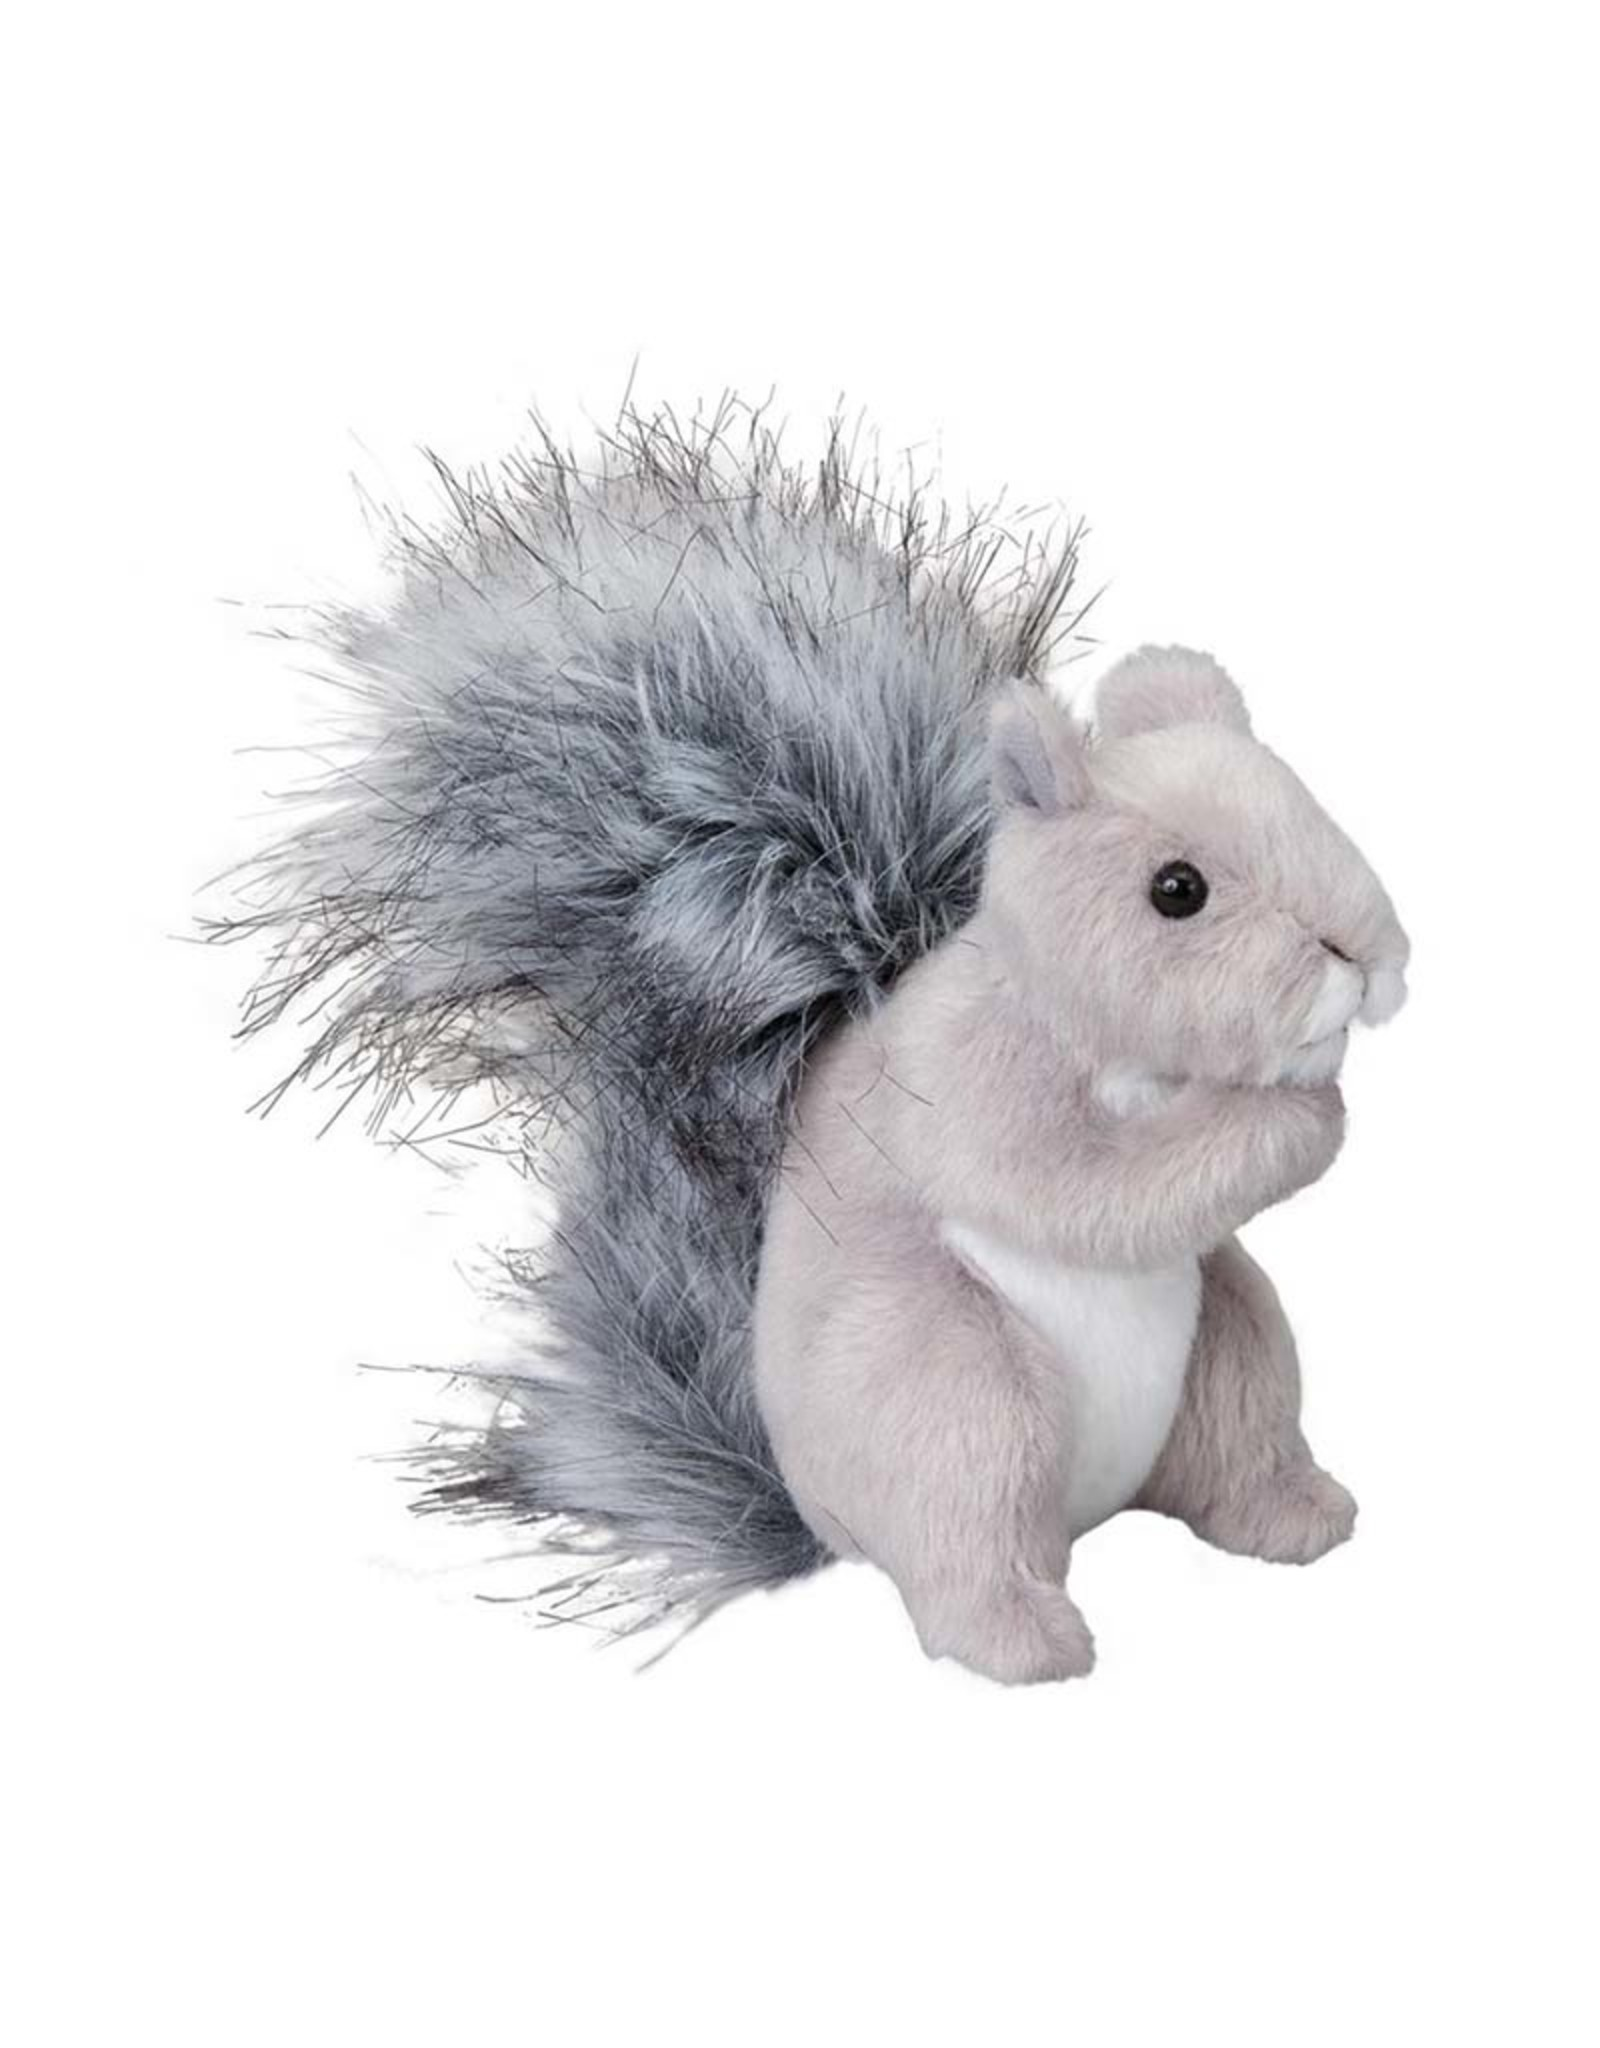 Douglas SHASTA GRAY SQUIRREL